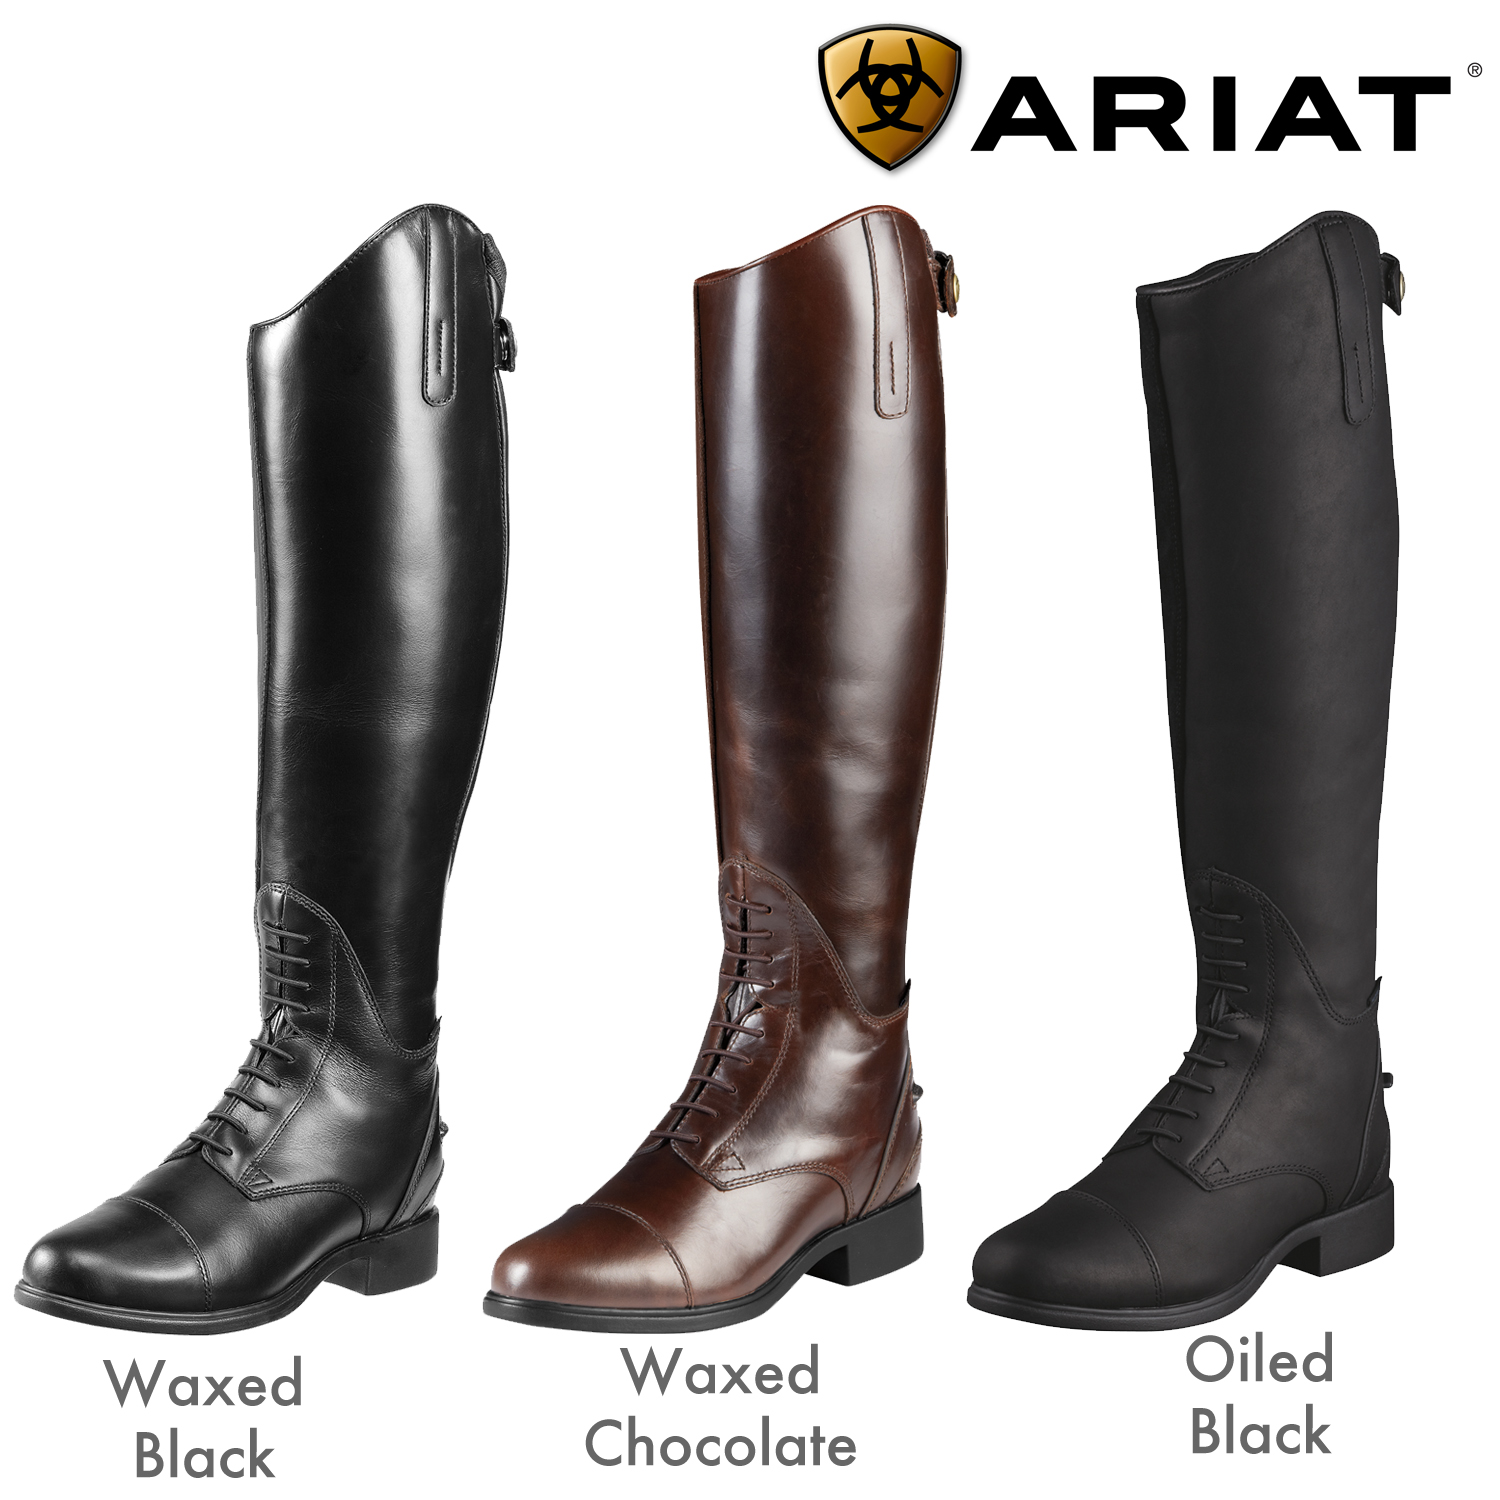 Ariat Boots On Sale g3evP85U